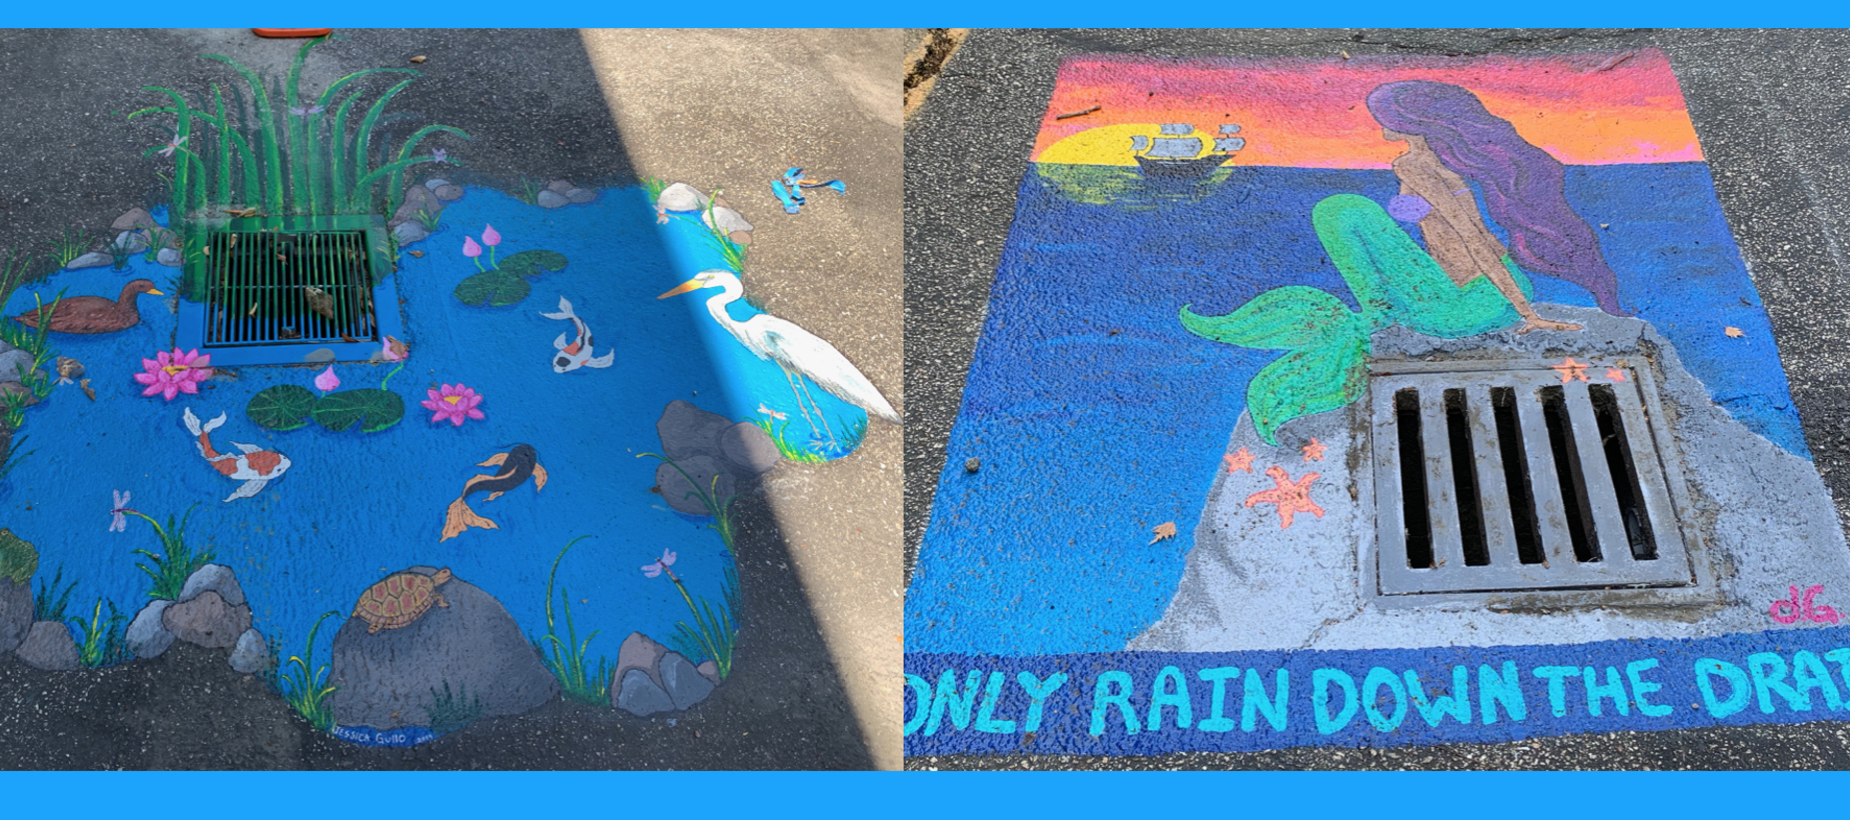 Drain Art at BCE, created by parent volunteers